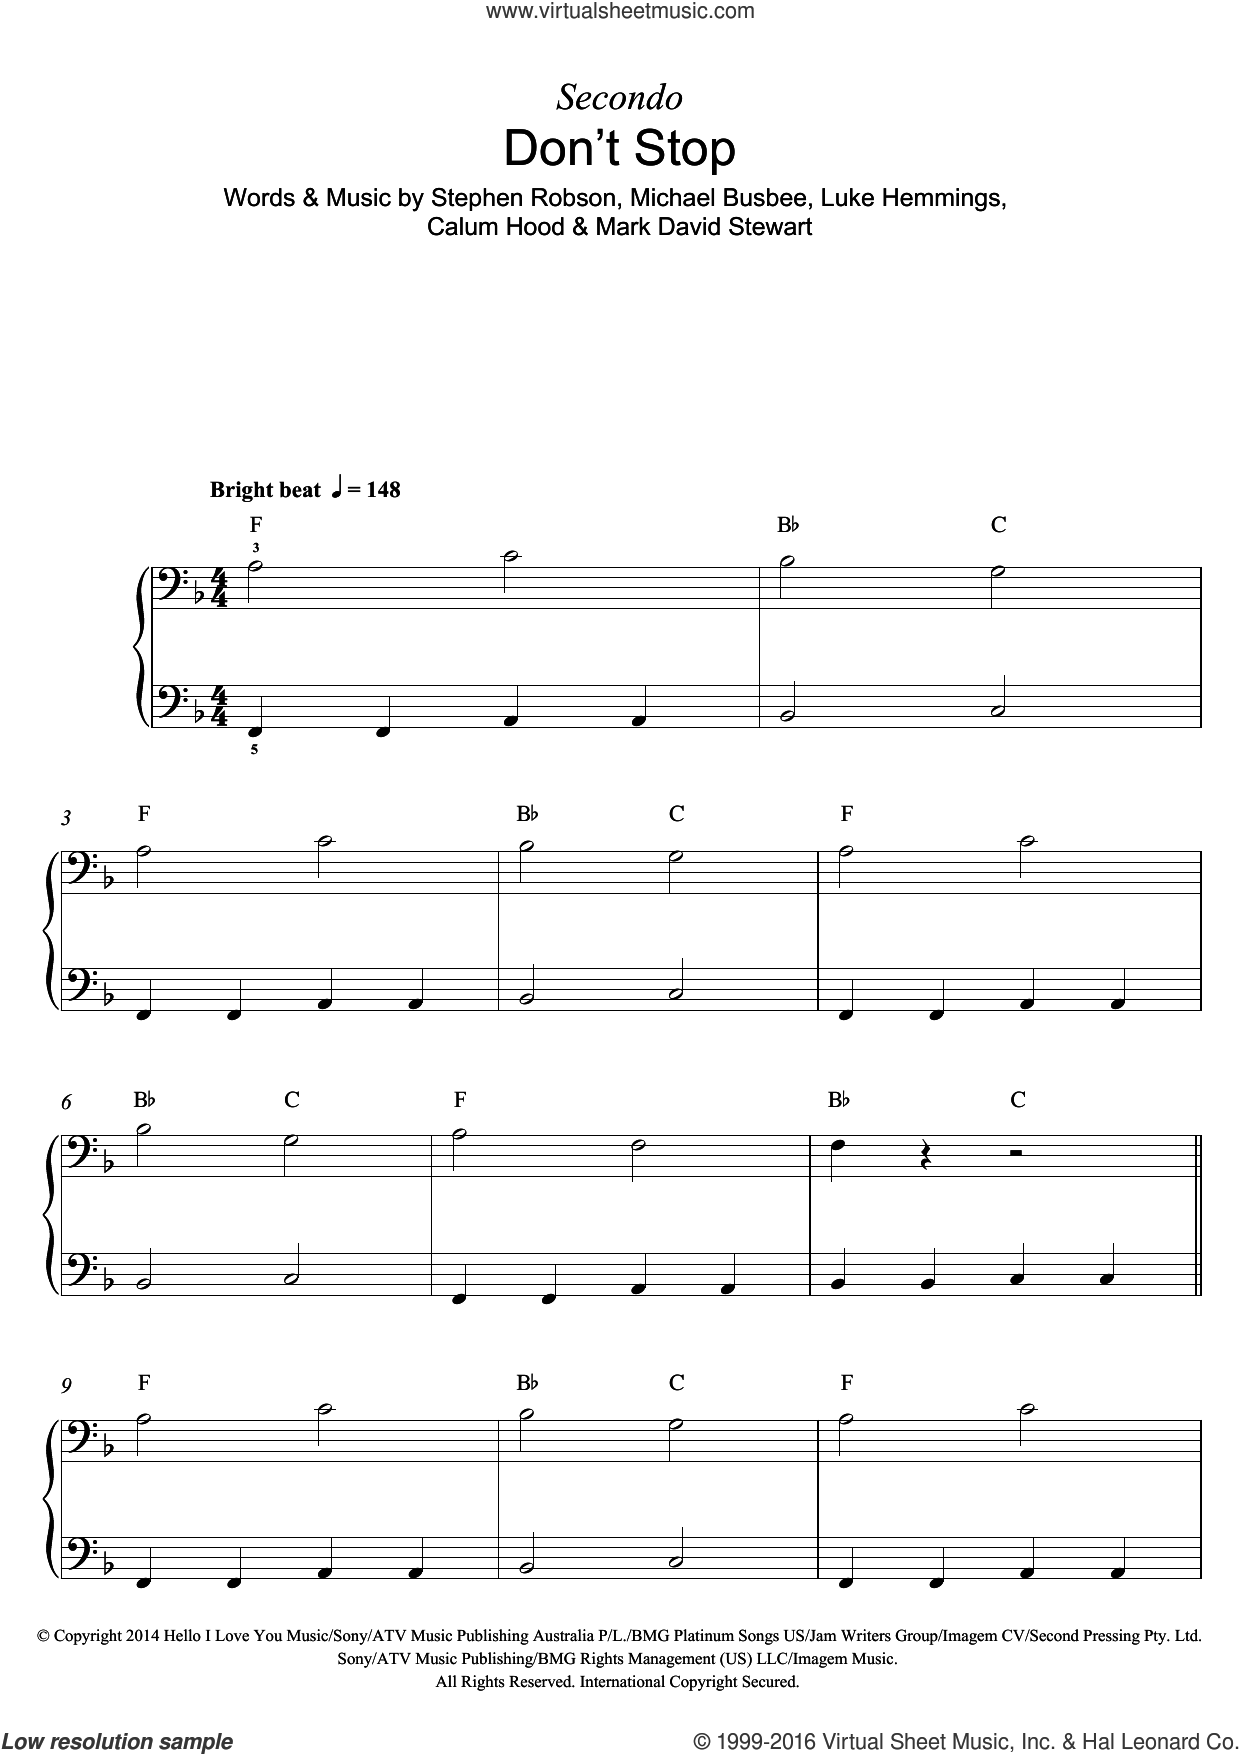 Don't Stop sheet music for piano solo by Steve Robson, Calum Hood, Luke Hemmings and Michael Busbee. Score Image Preview.